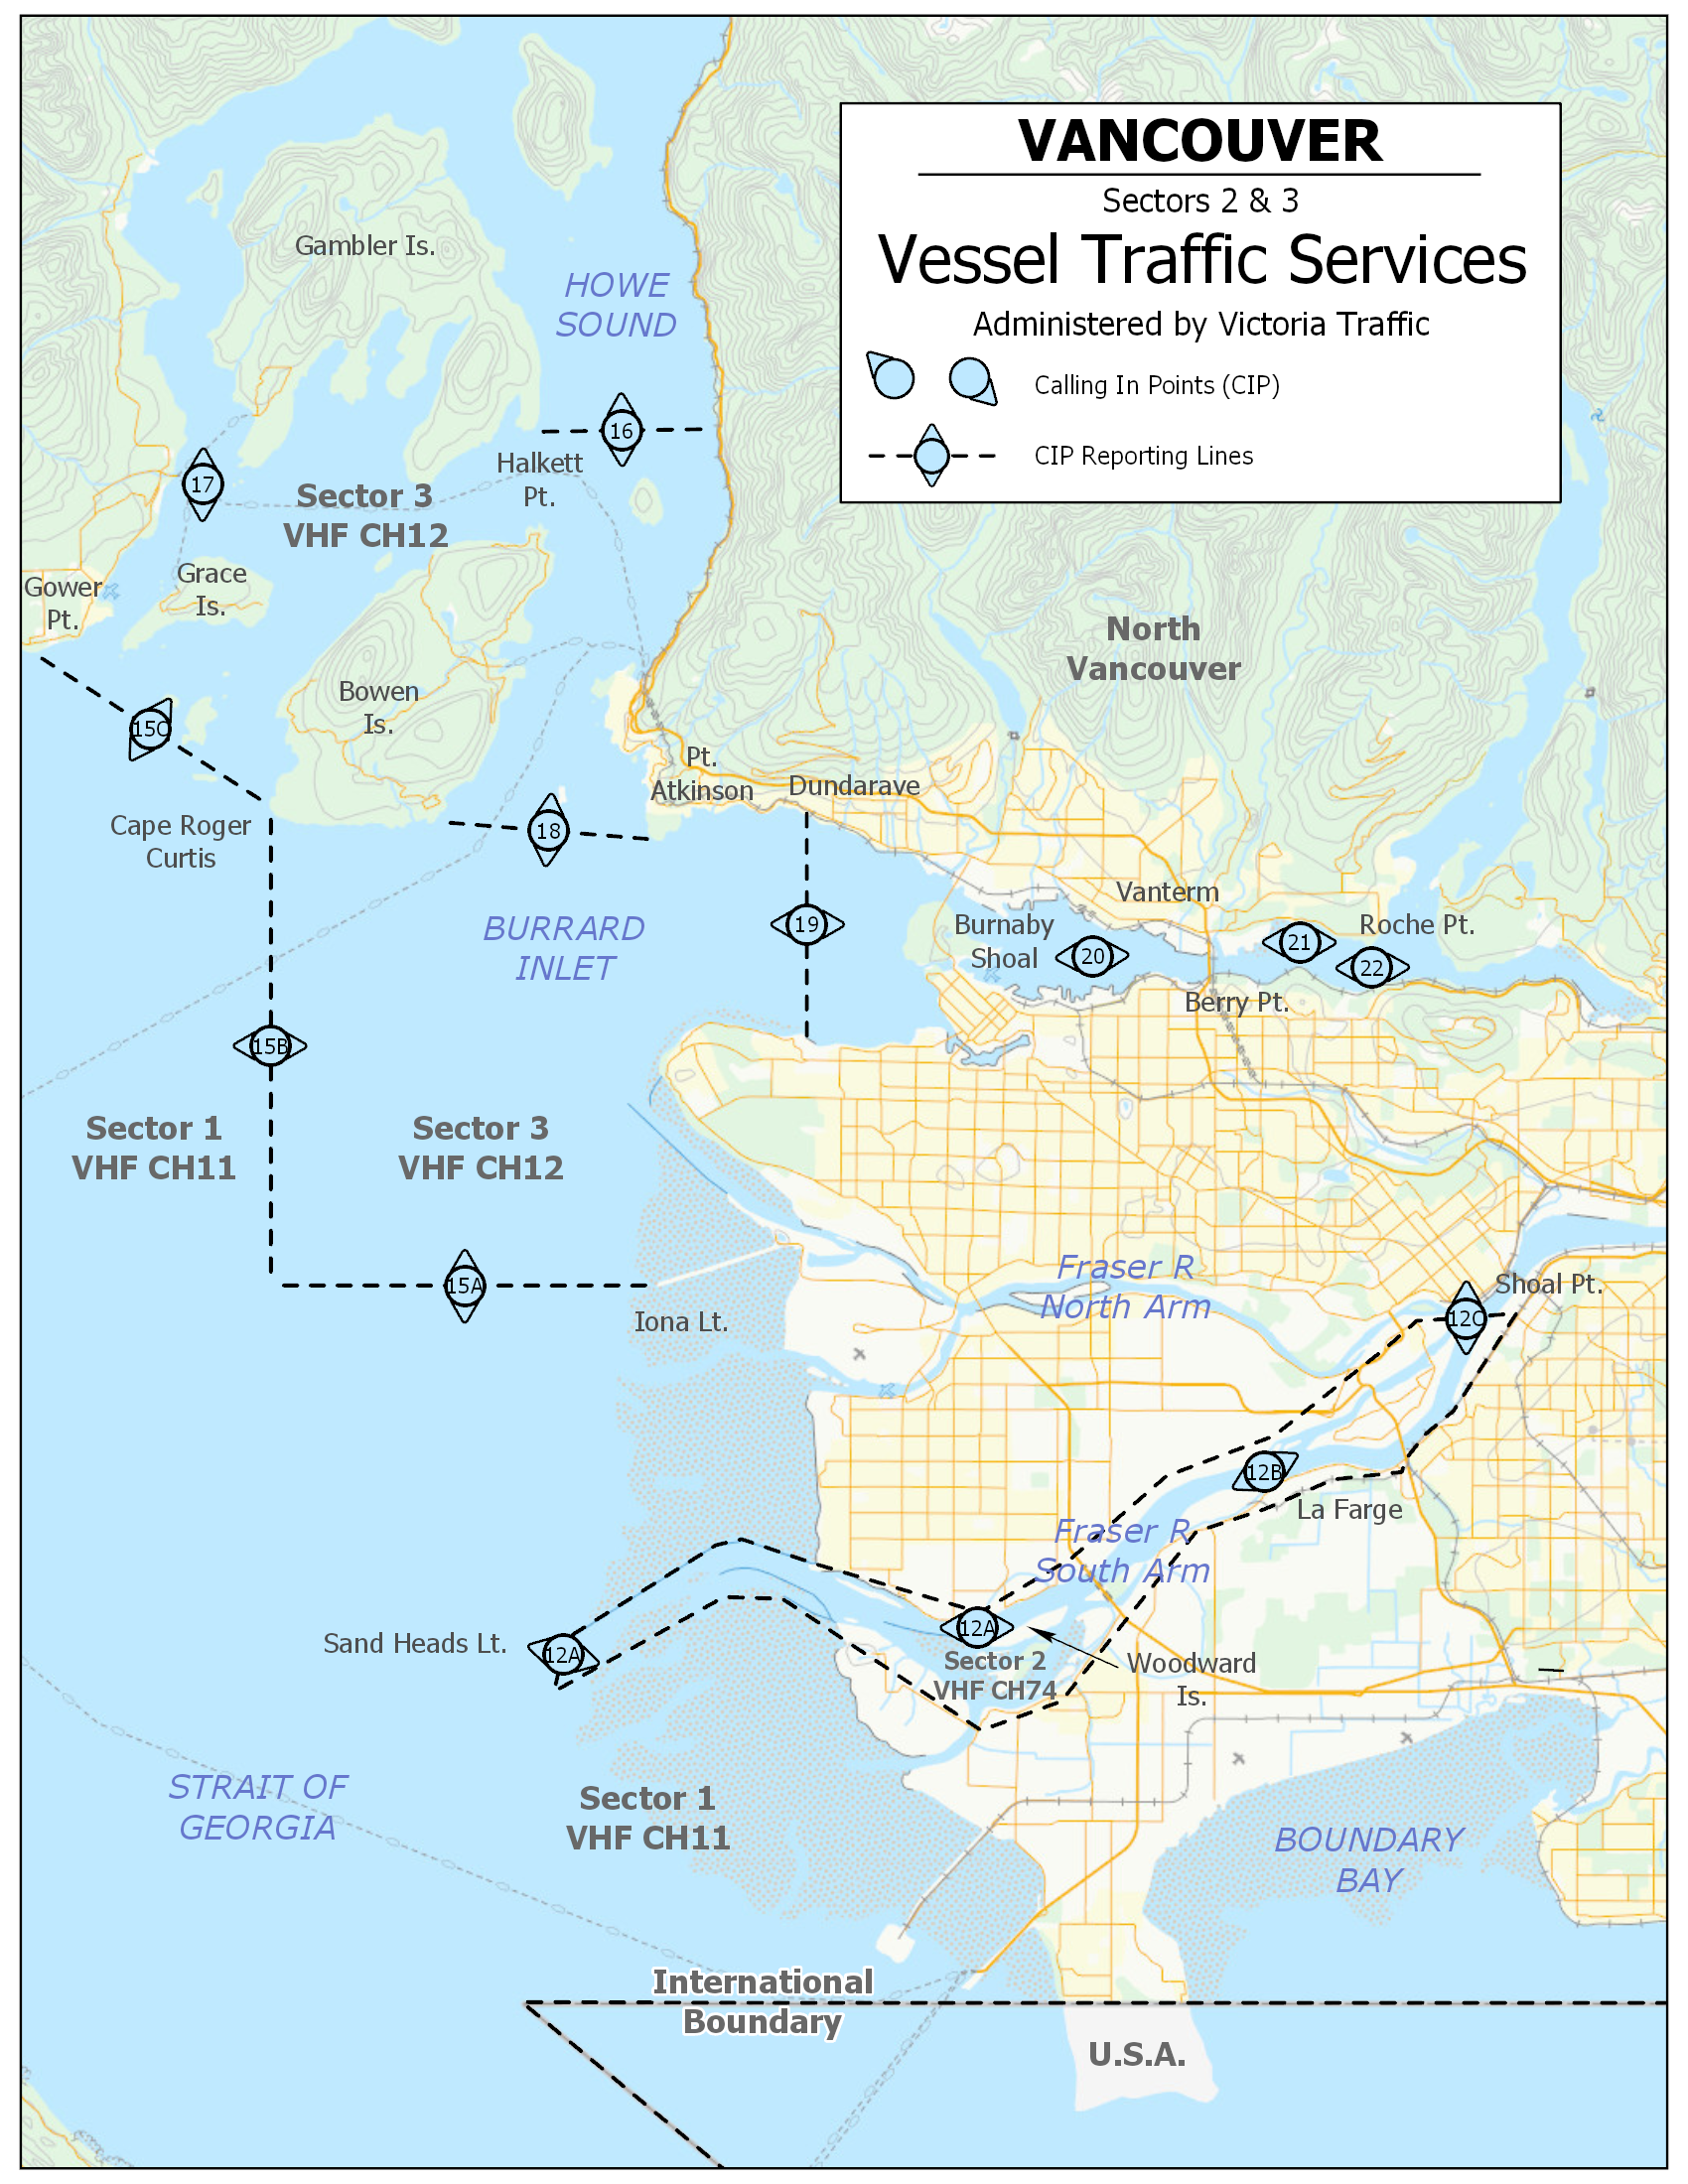 Vancouver Vessel Traffic Services Sector 2 and 3